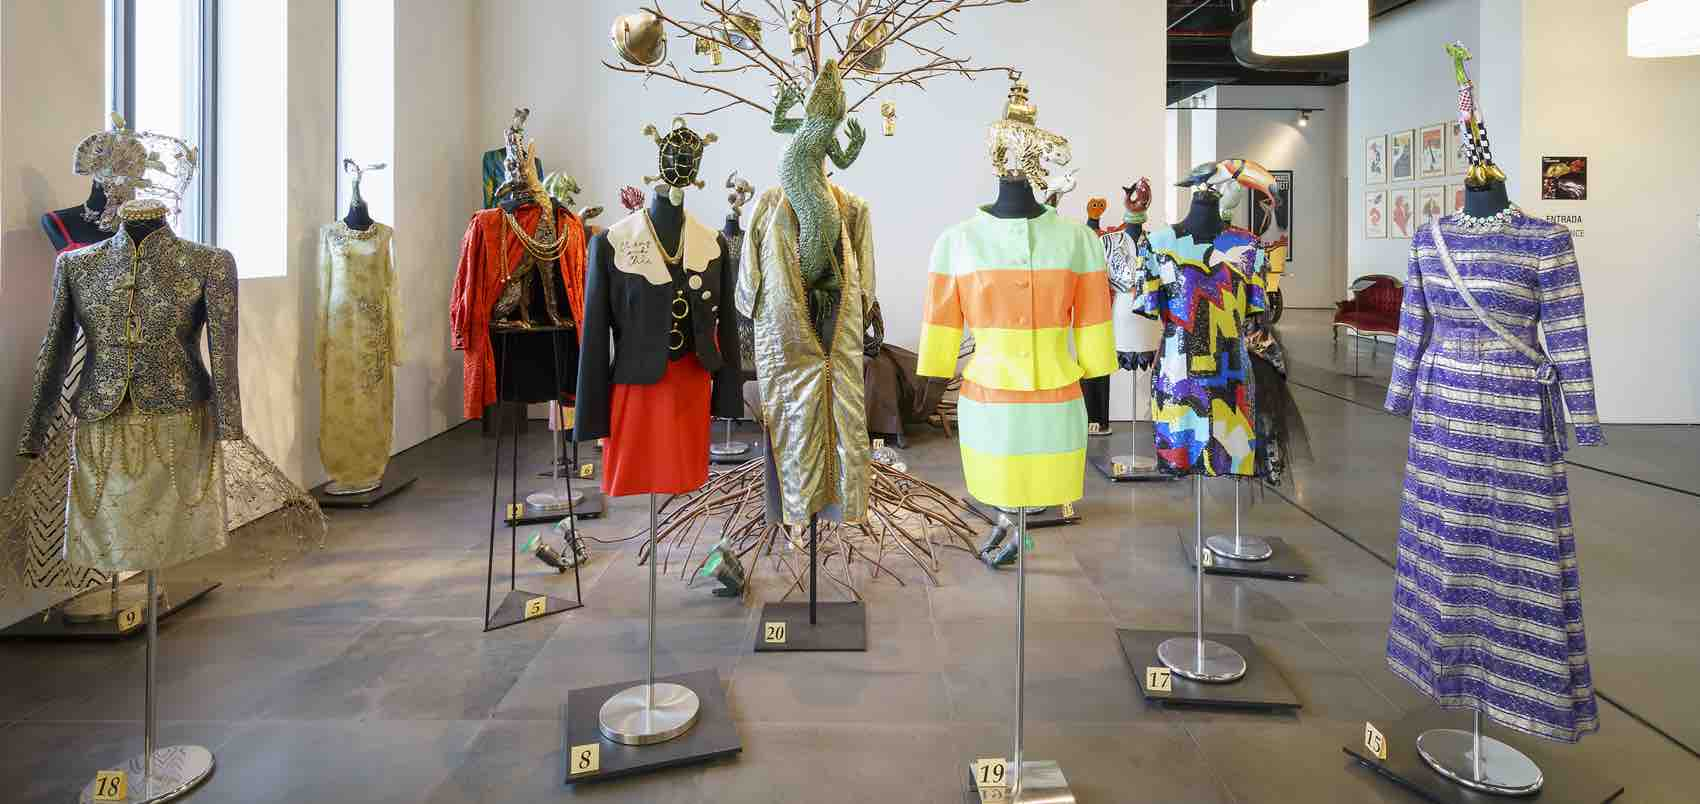 Old Fashion: The museum where cars are linked with fashion